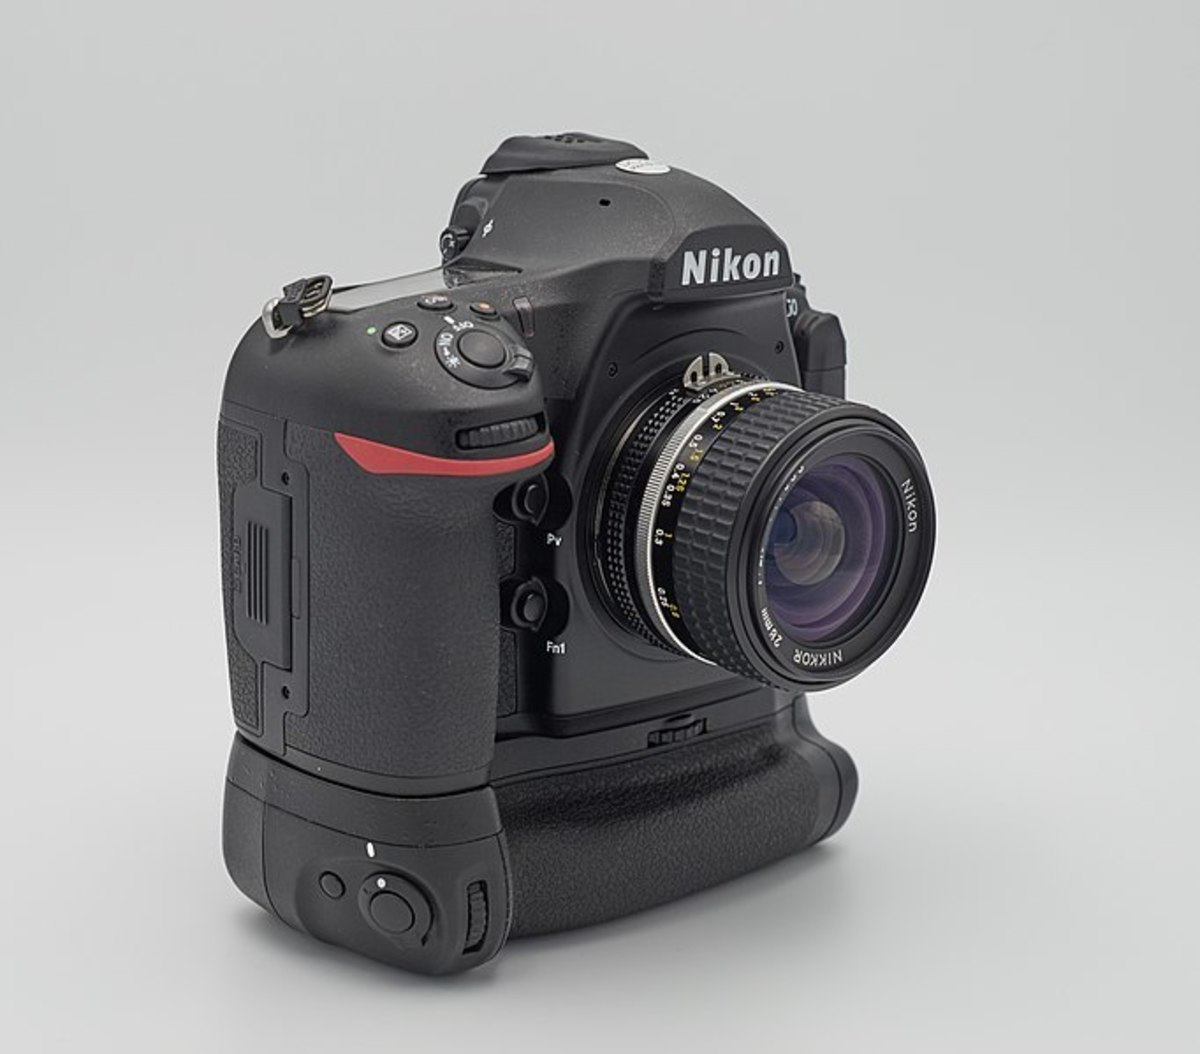 Nikon D850 mounted with battery grip.